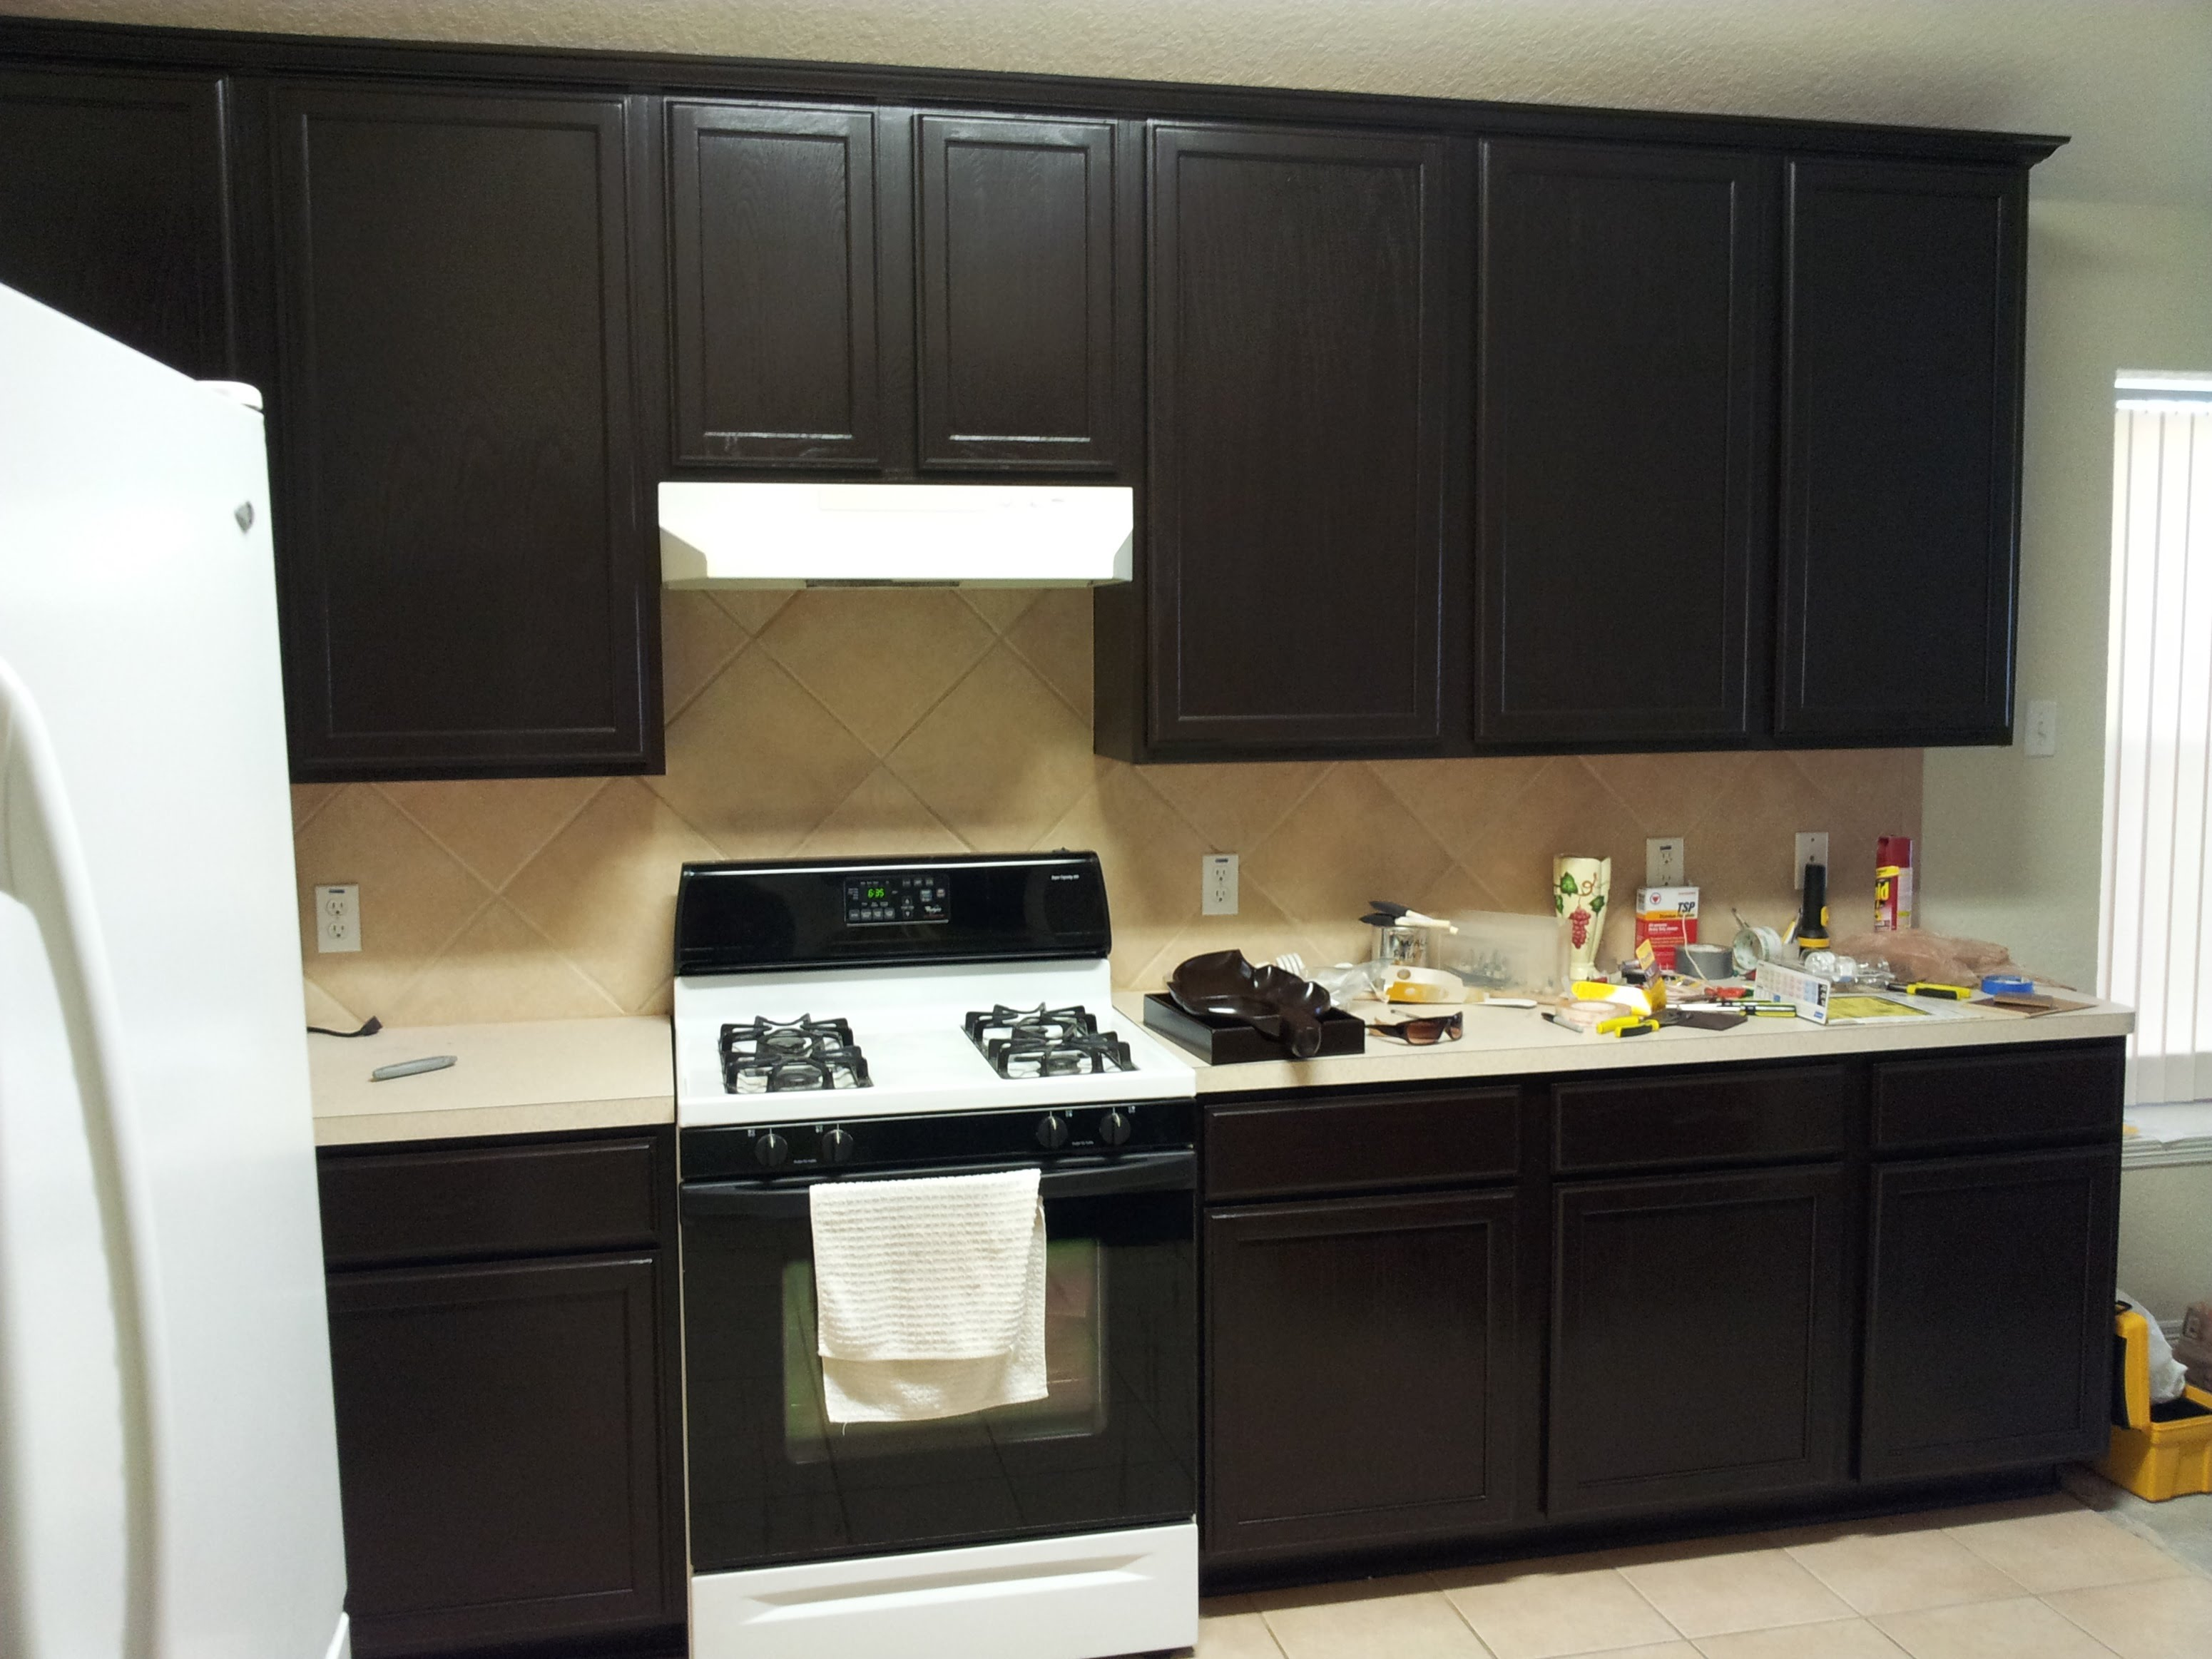 Pictures of gel staining kitchen cabinets - youtube axowzgt